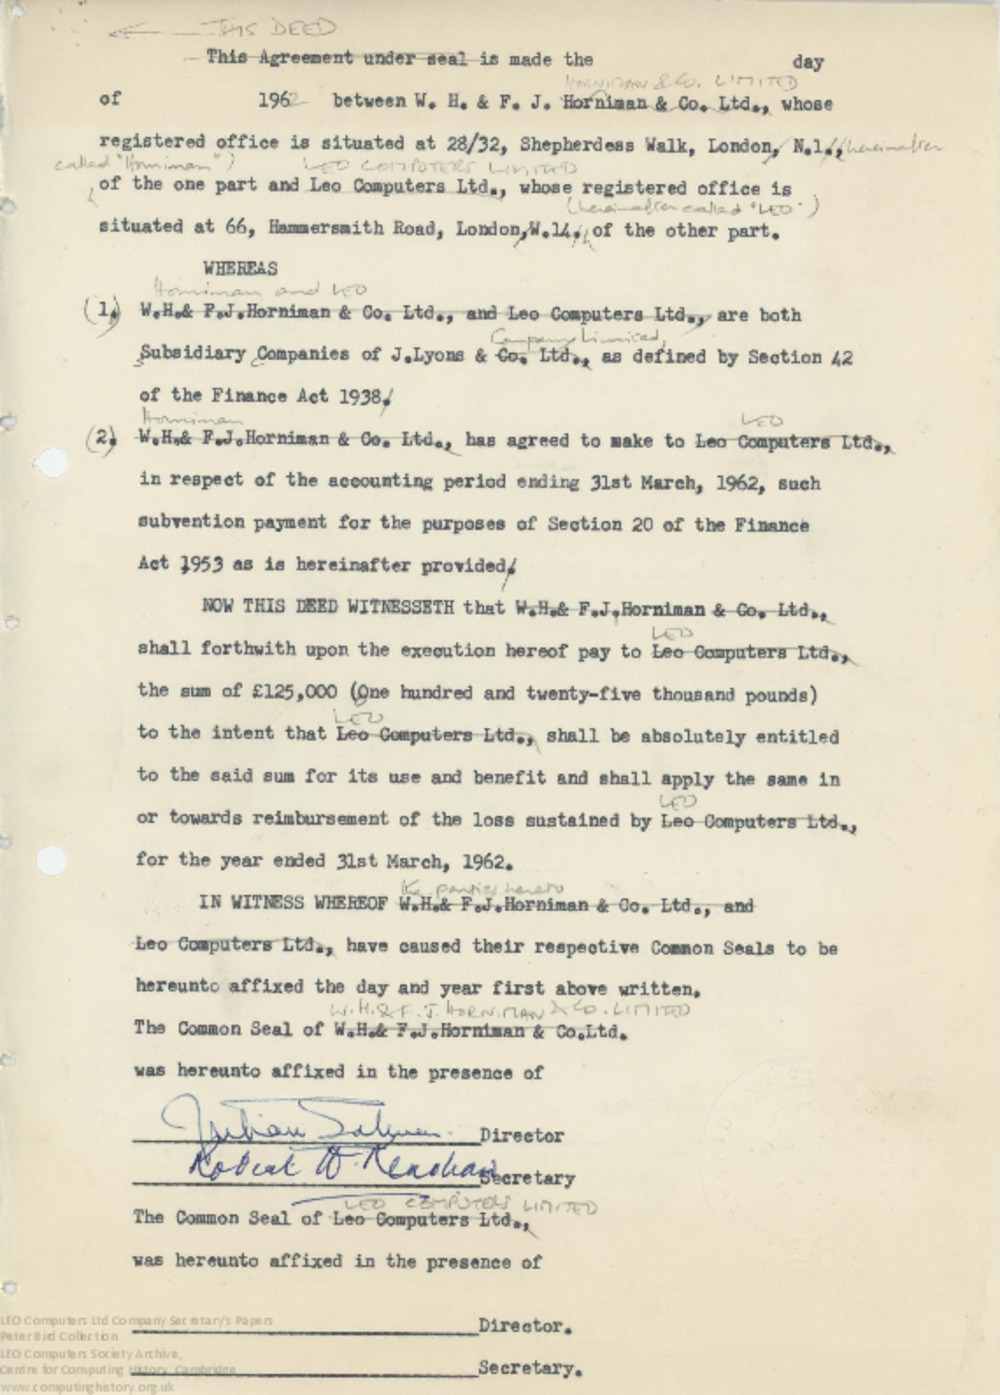 Article: 62861 Subvention payments to Lyons subsidiary companies, Apr-Jul 1962